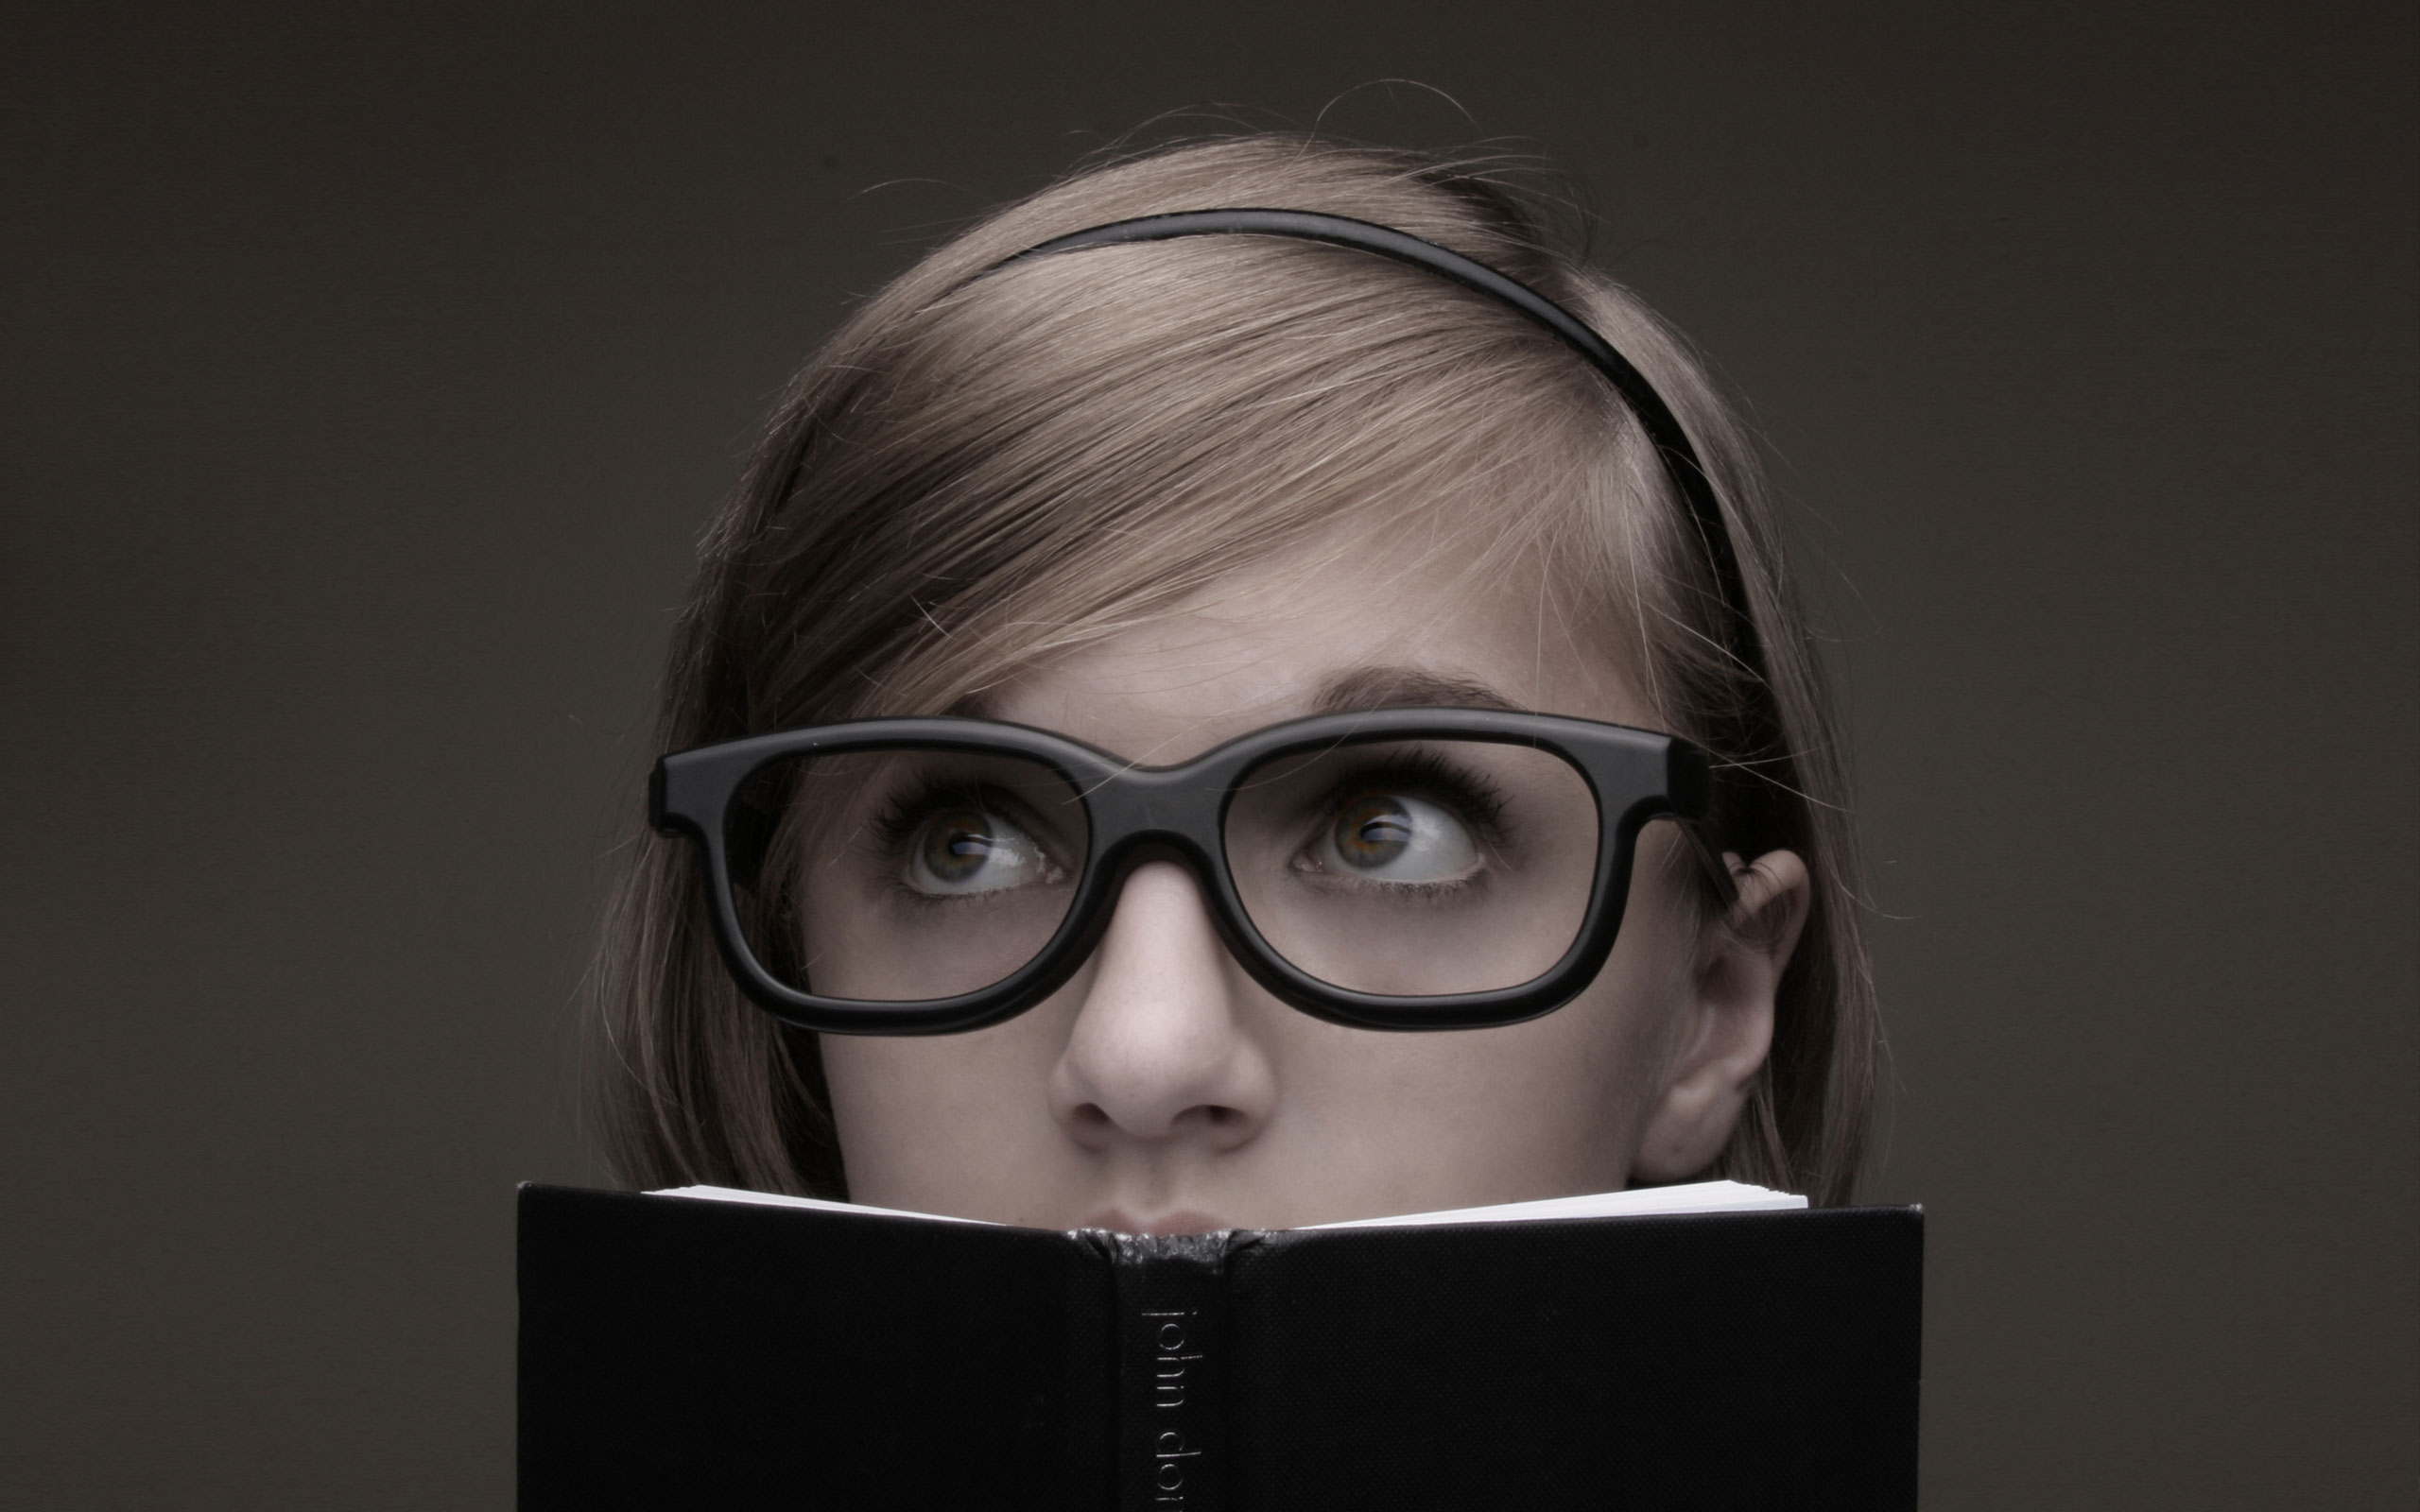 girls with glasses wallpaper 33607